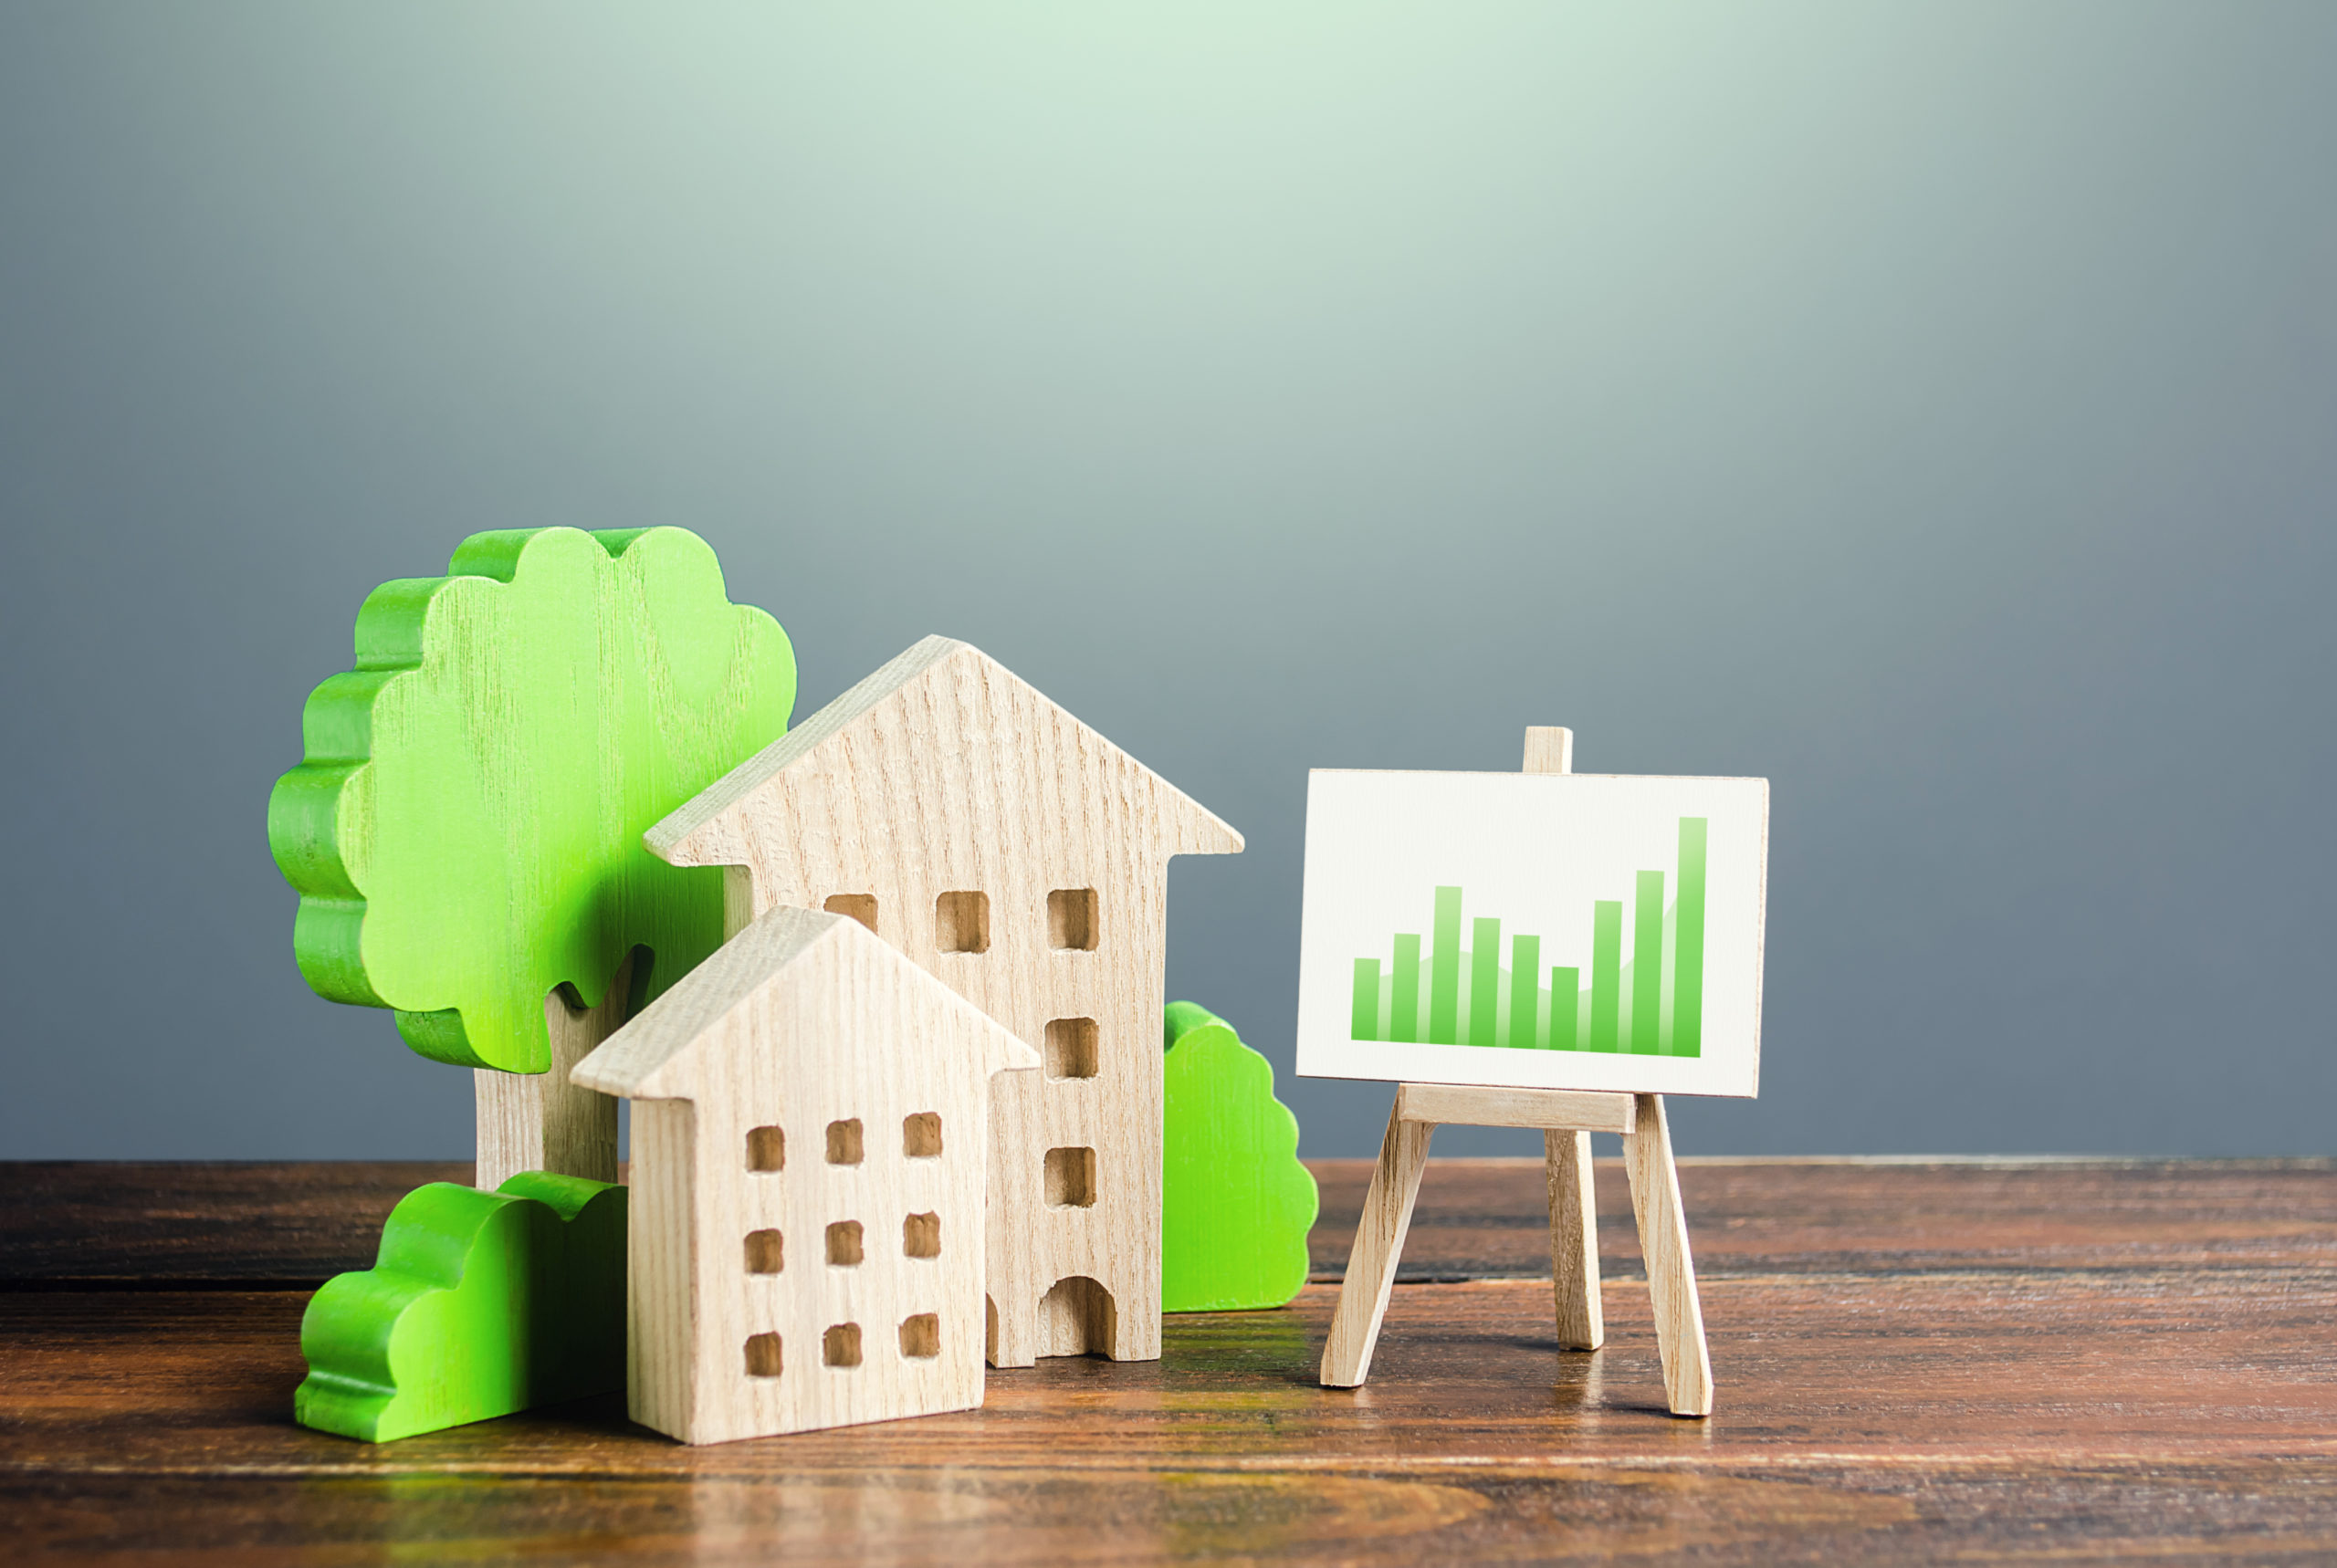 Wooden Toy Houses and trees and chart